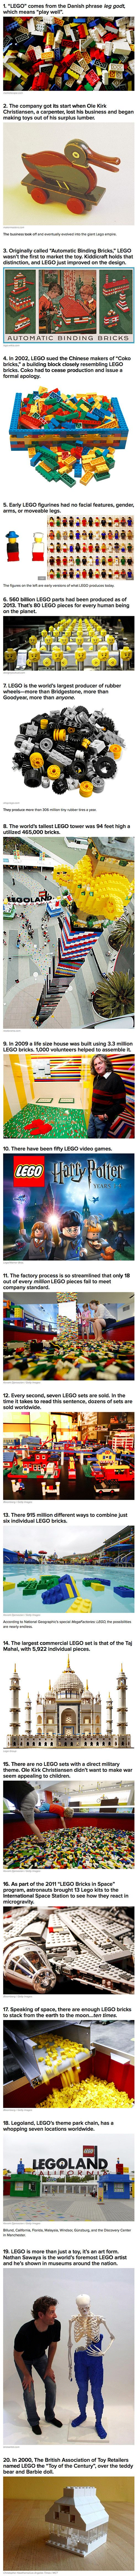 Here are some fun and interesting things you may not have known about LEGO.